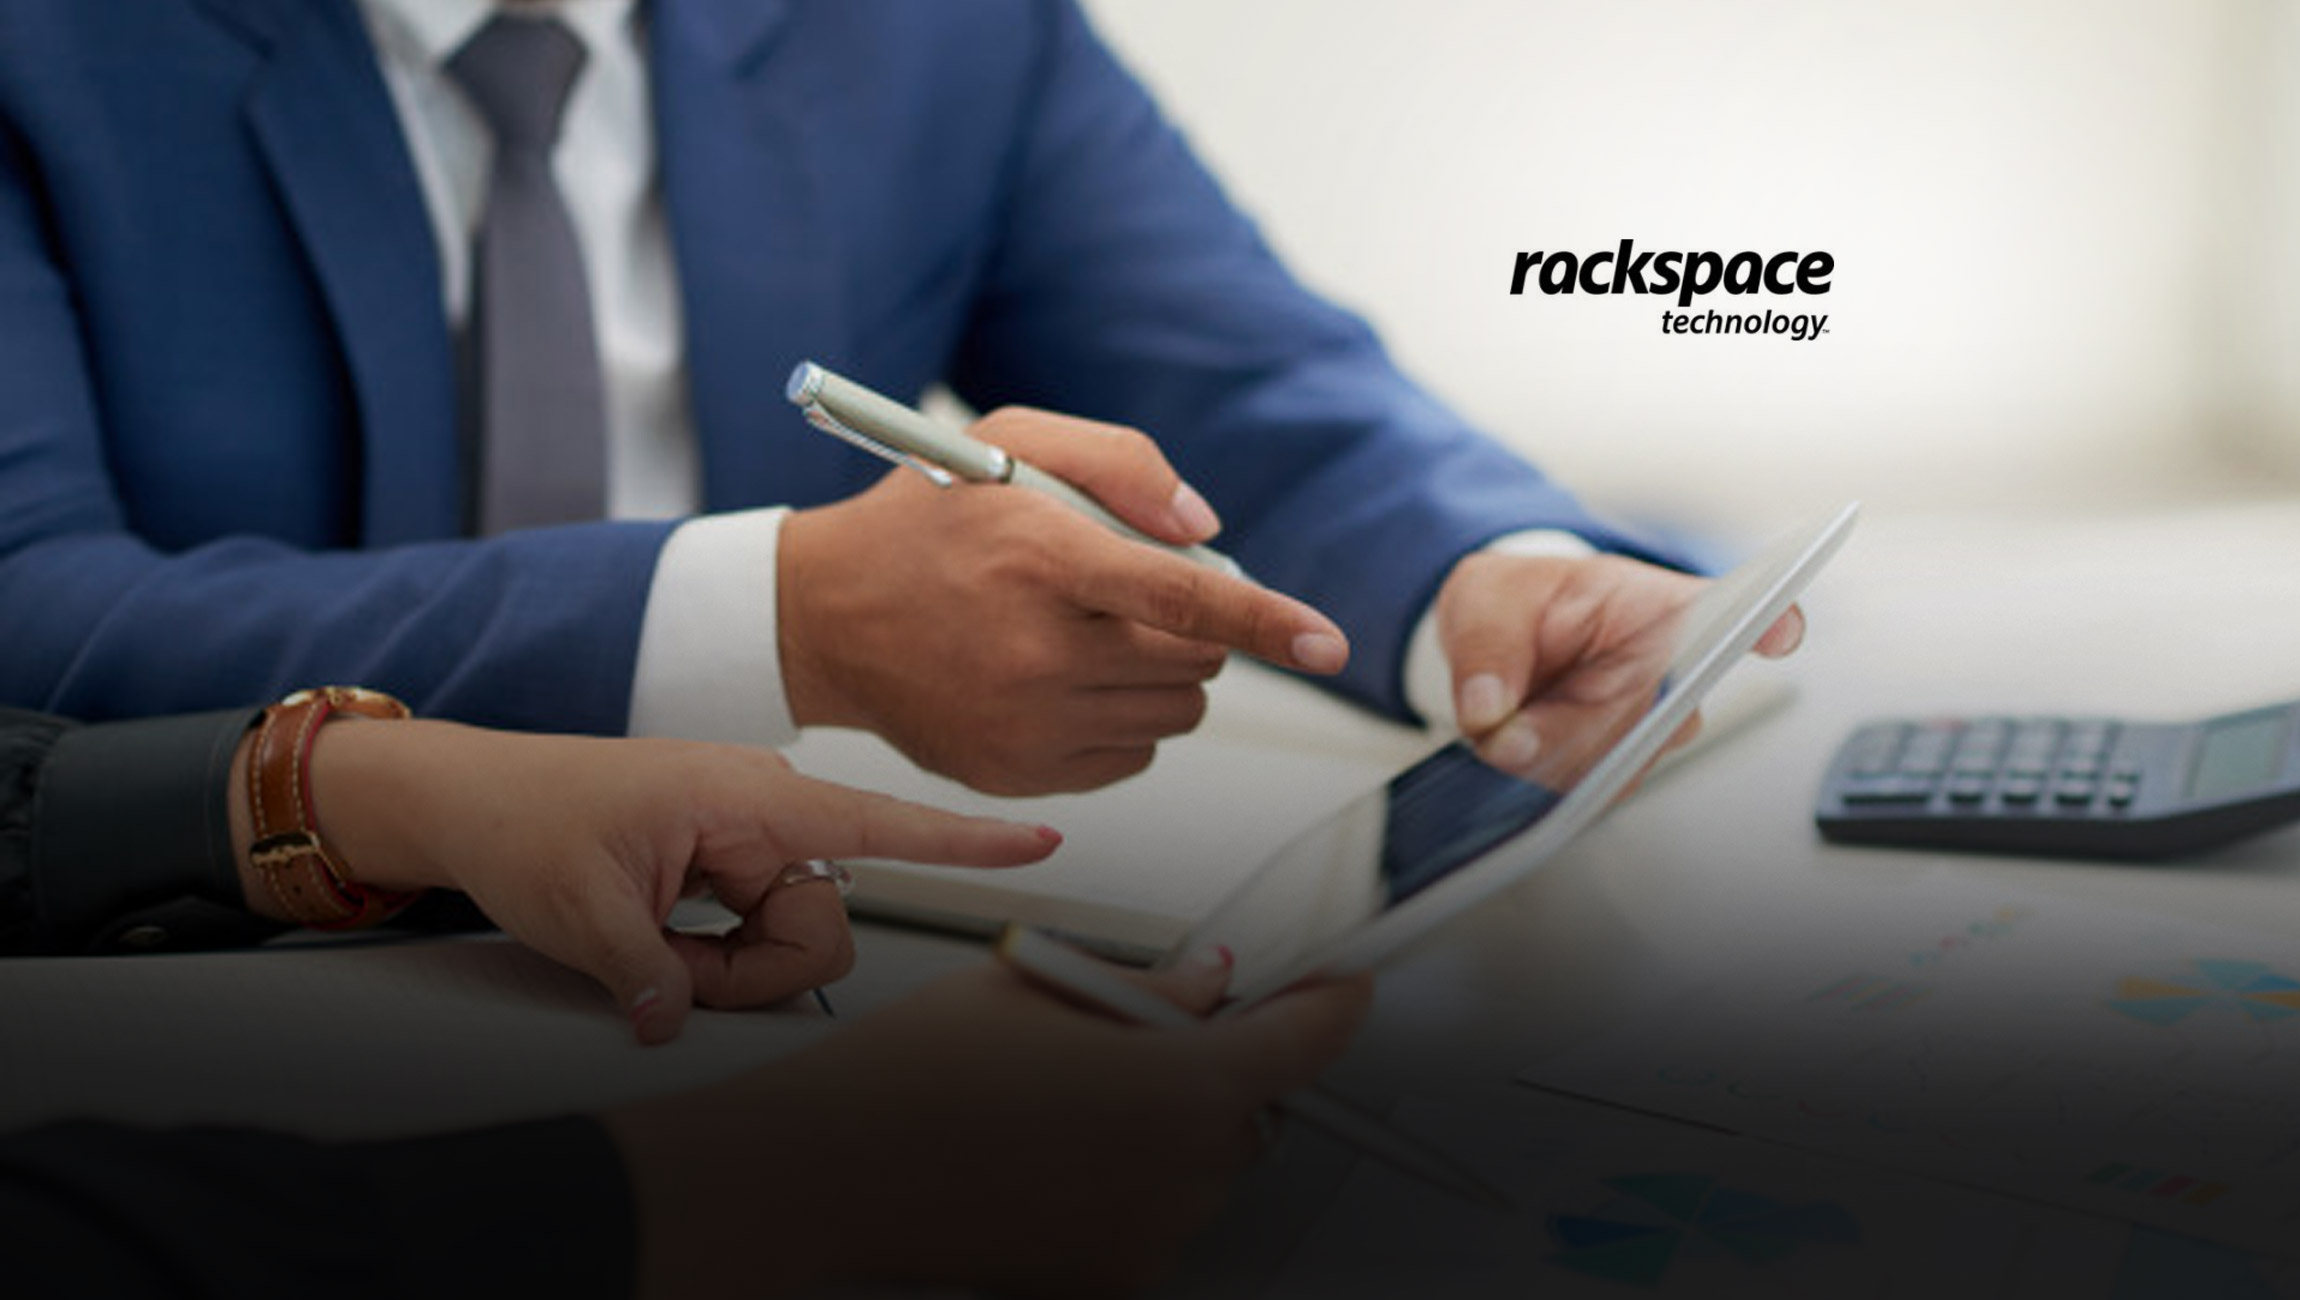 Rackspace Technology Empowers Productivity with Rackspace Elastic Engineering for Microsoft 365